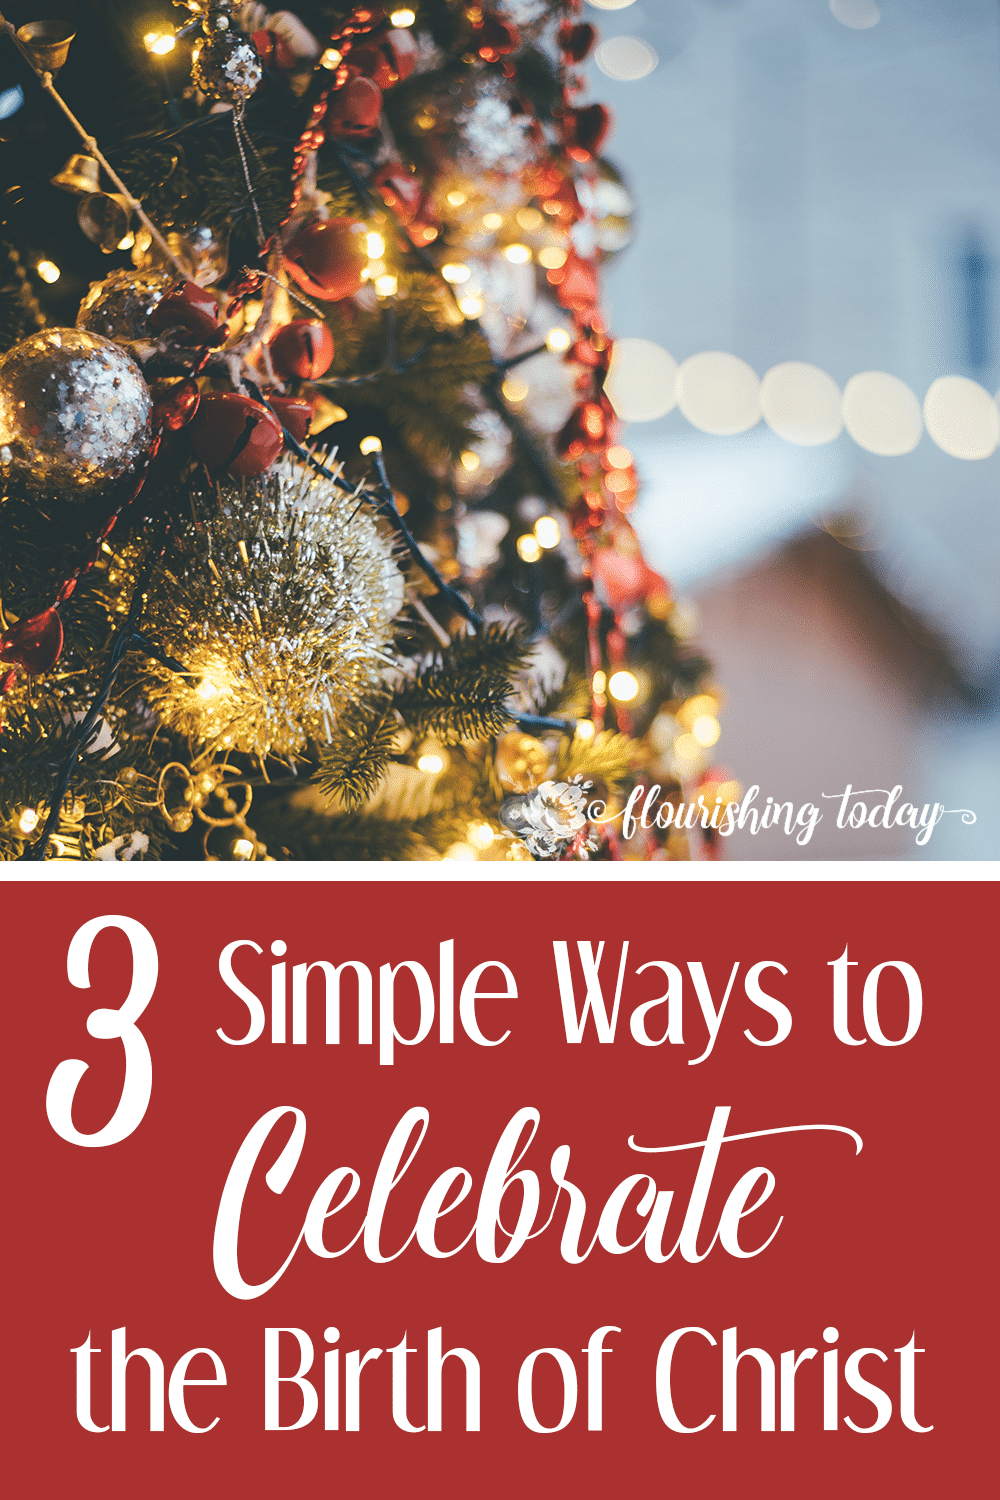 The holidays are a time for celebrating. But many times we forget the why behind the celebration. Here are a few ideas to celebrate Christ.